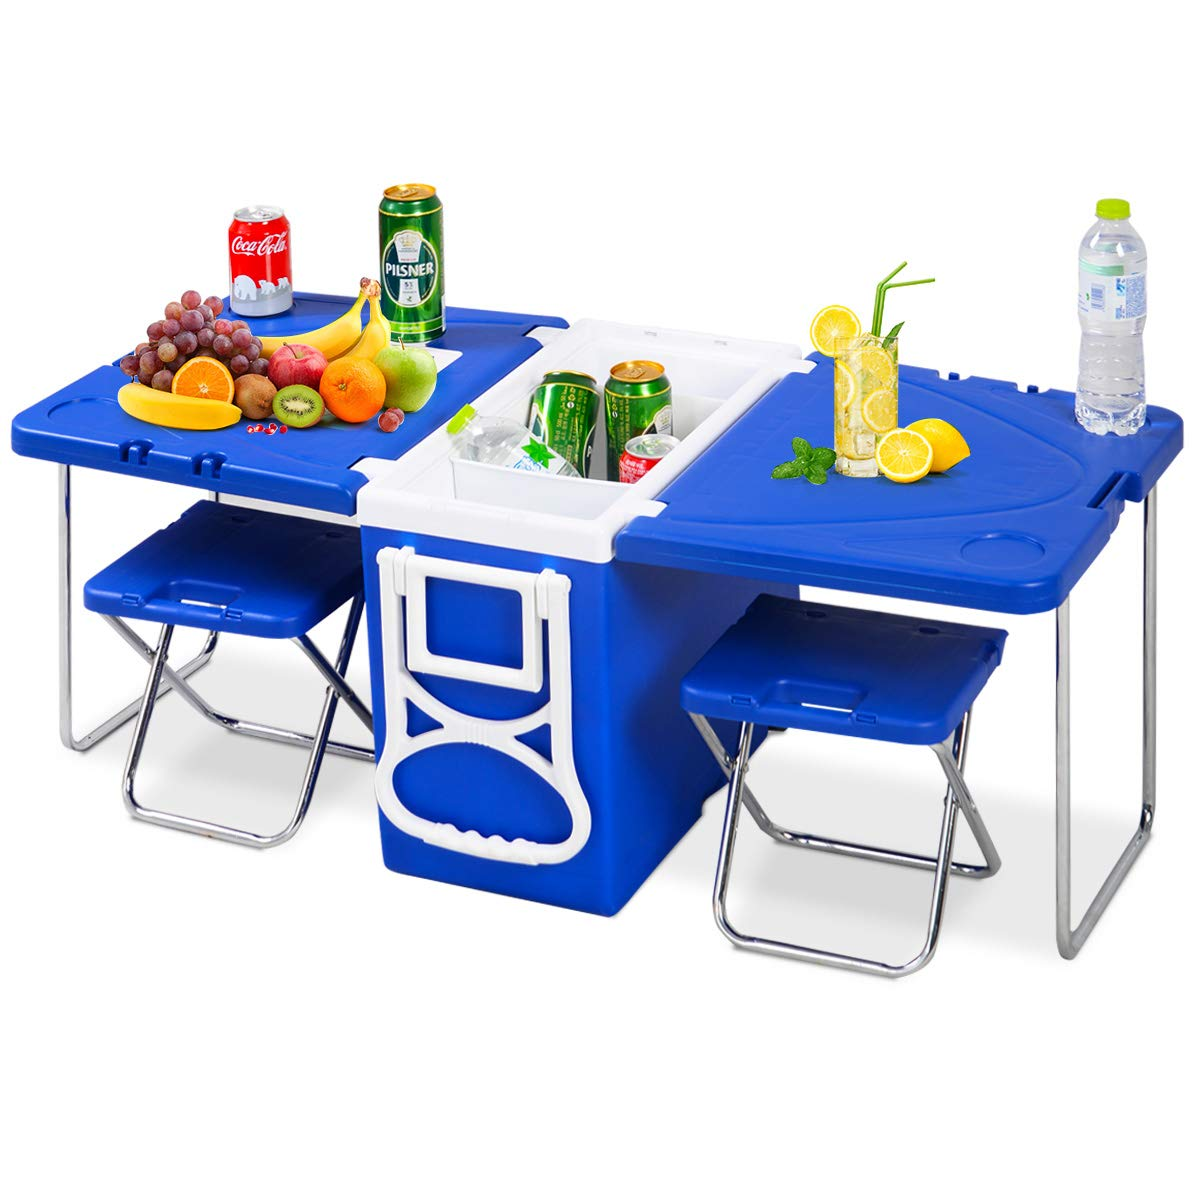 Giantex Rolling Cooler Picnic Table Multi Function for Picnic Fishing Portable Storage Food Beverage Included Foldable Table W/ Two Chairs Camping Trip Cooler Children Size (Blue) by Giantex